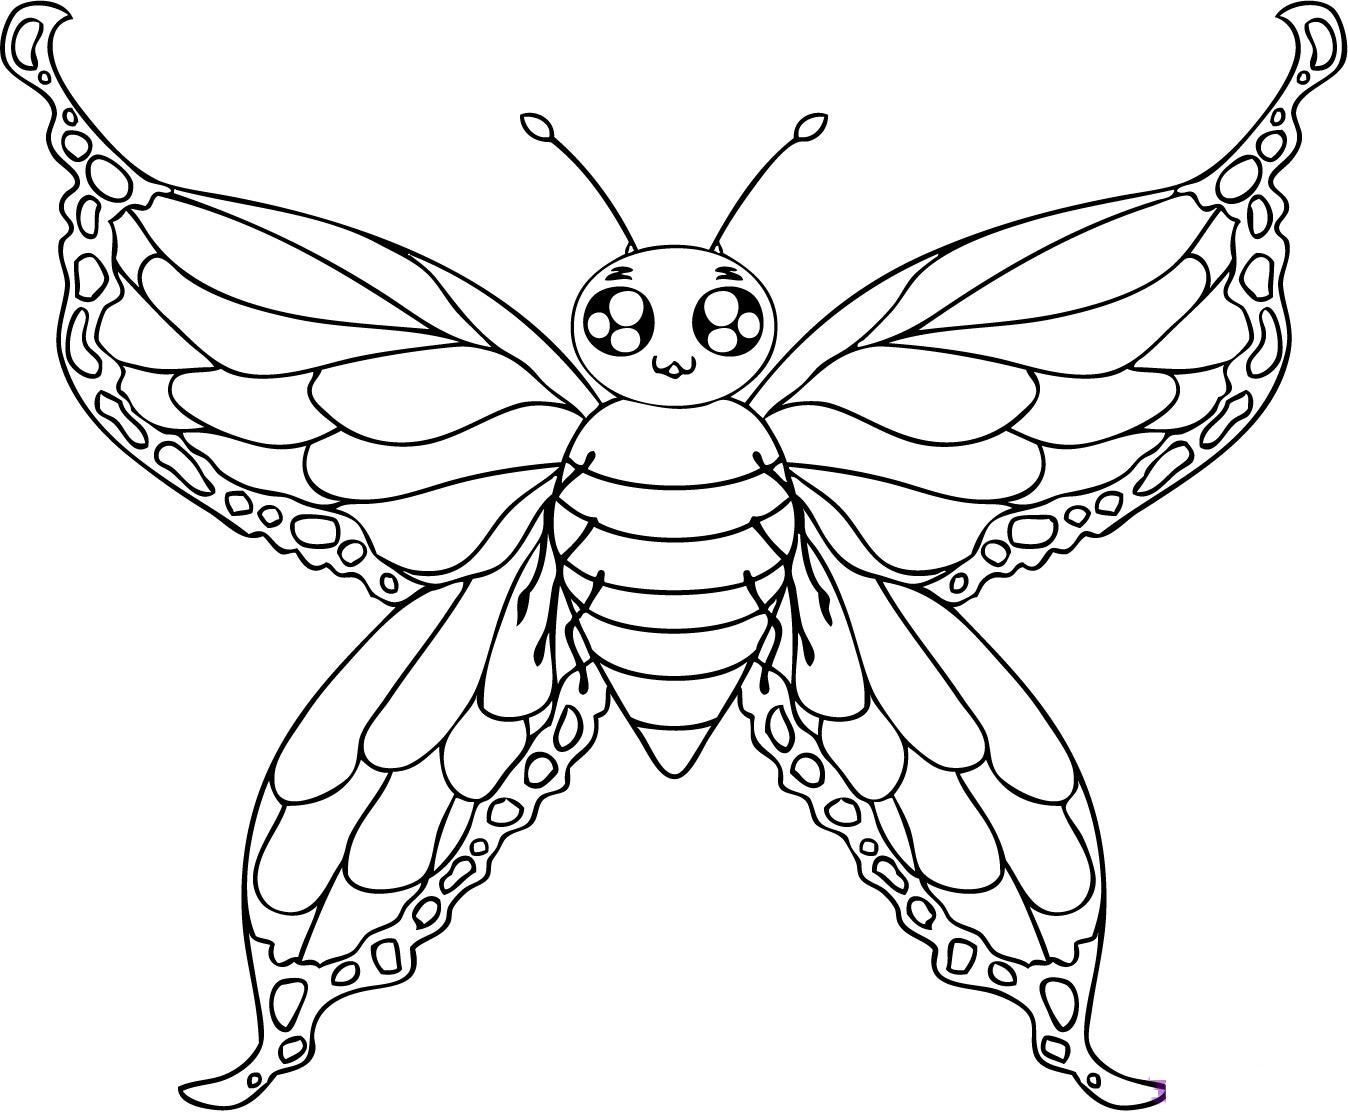 Color In Your Drawing And You Have Finished This Tutorial On How To Draw A Butterfly ImagesButterfly PicturesColoring